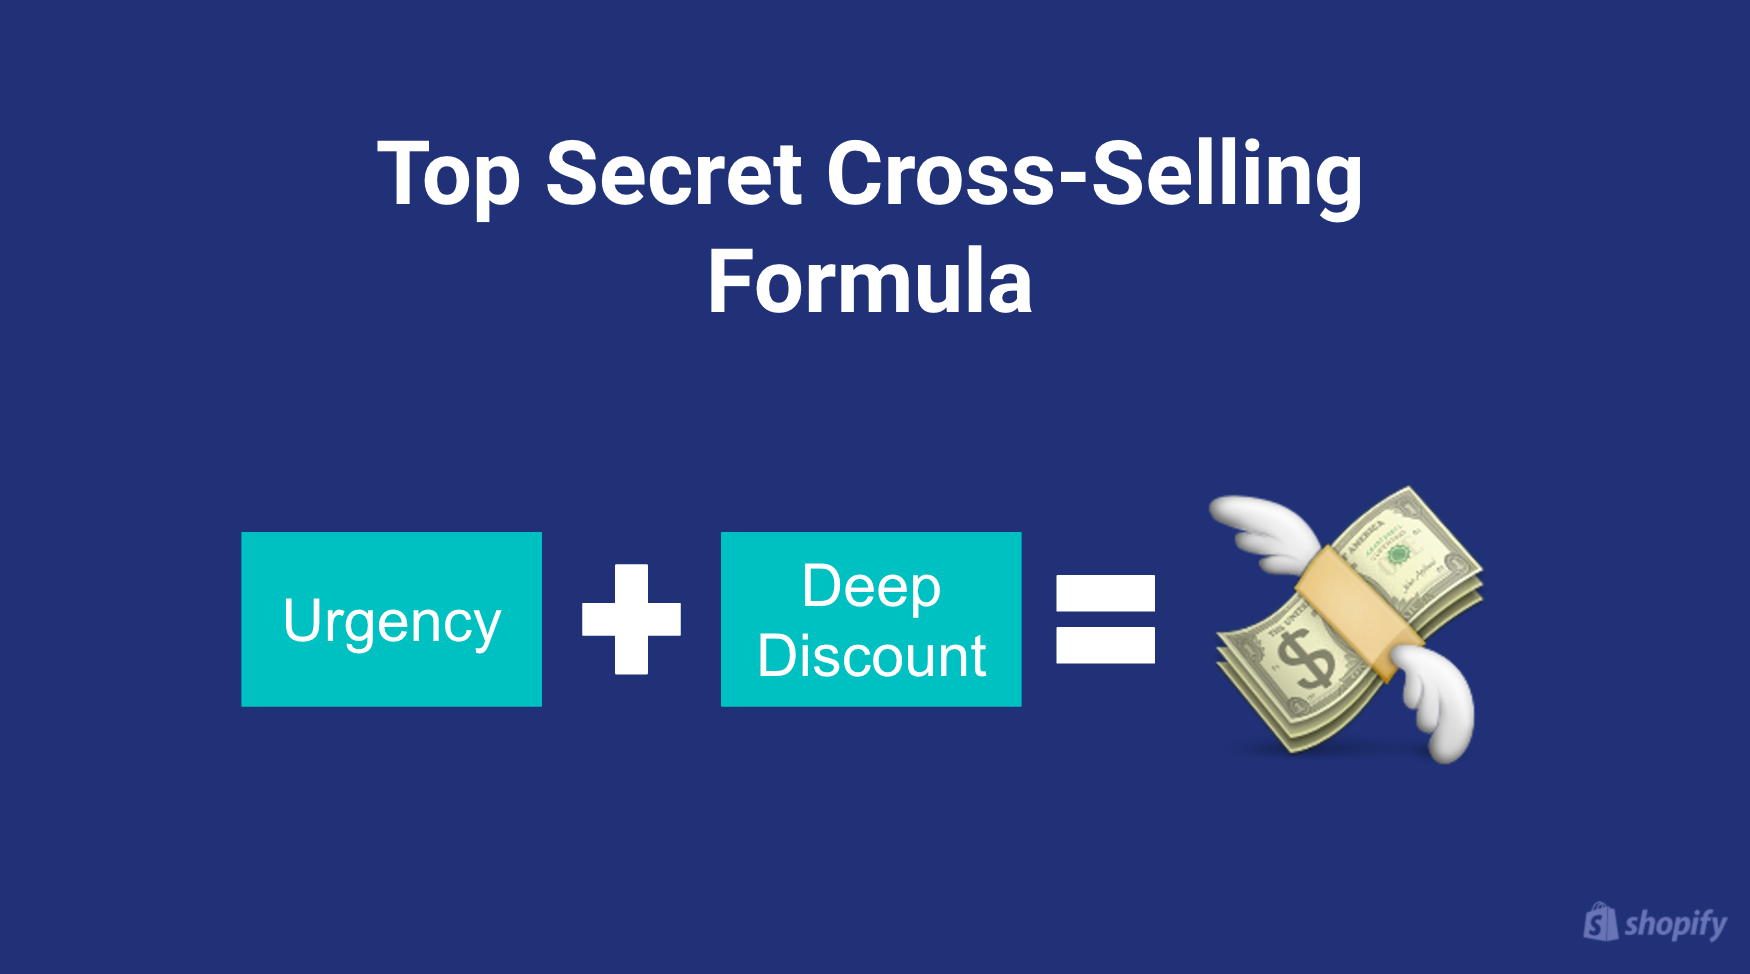 Top secret cross-selling formula